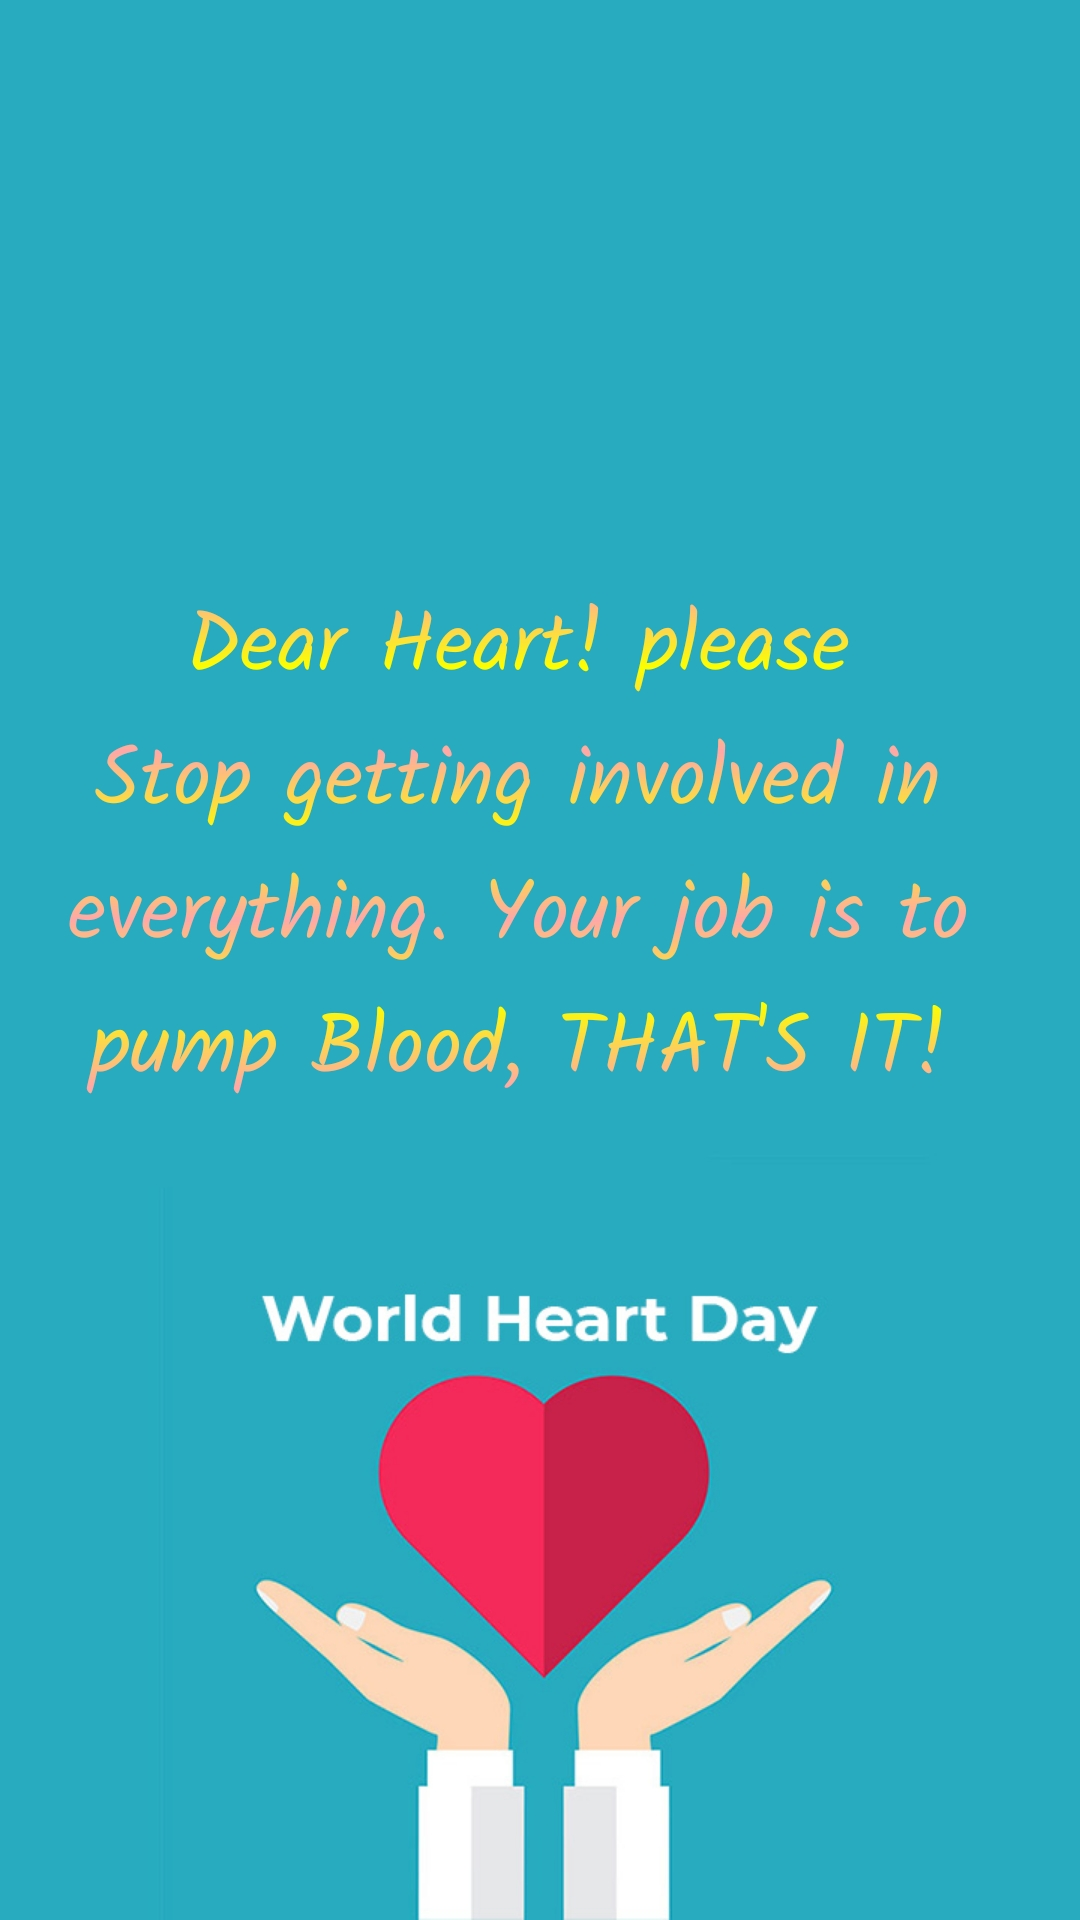 Dear Heart! please Stop getting involved in everything. Your job is to pump Blood, THAT'S IT!